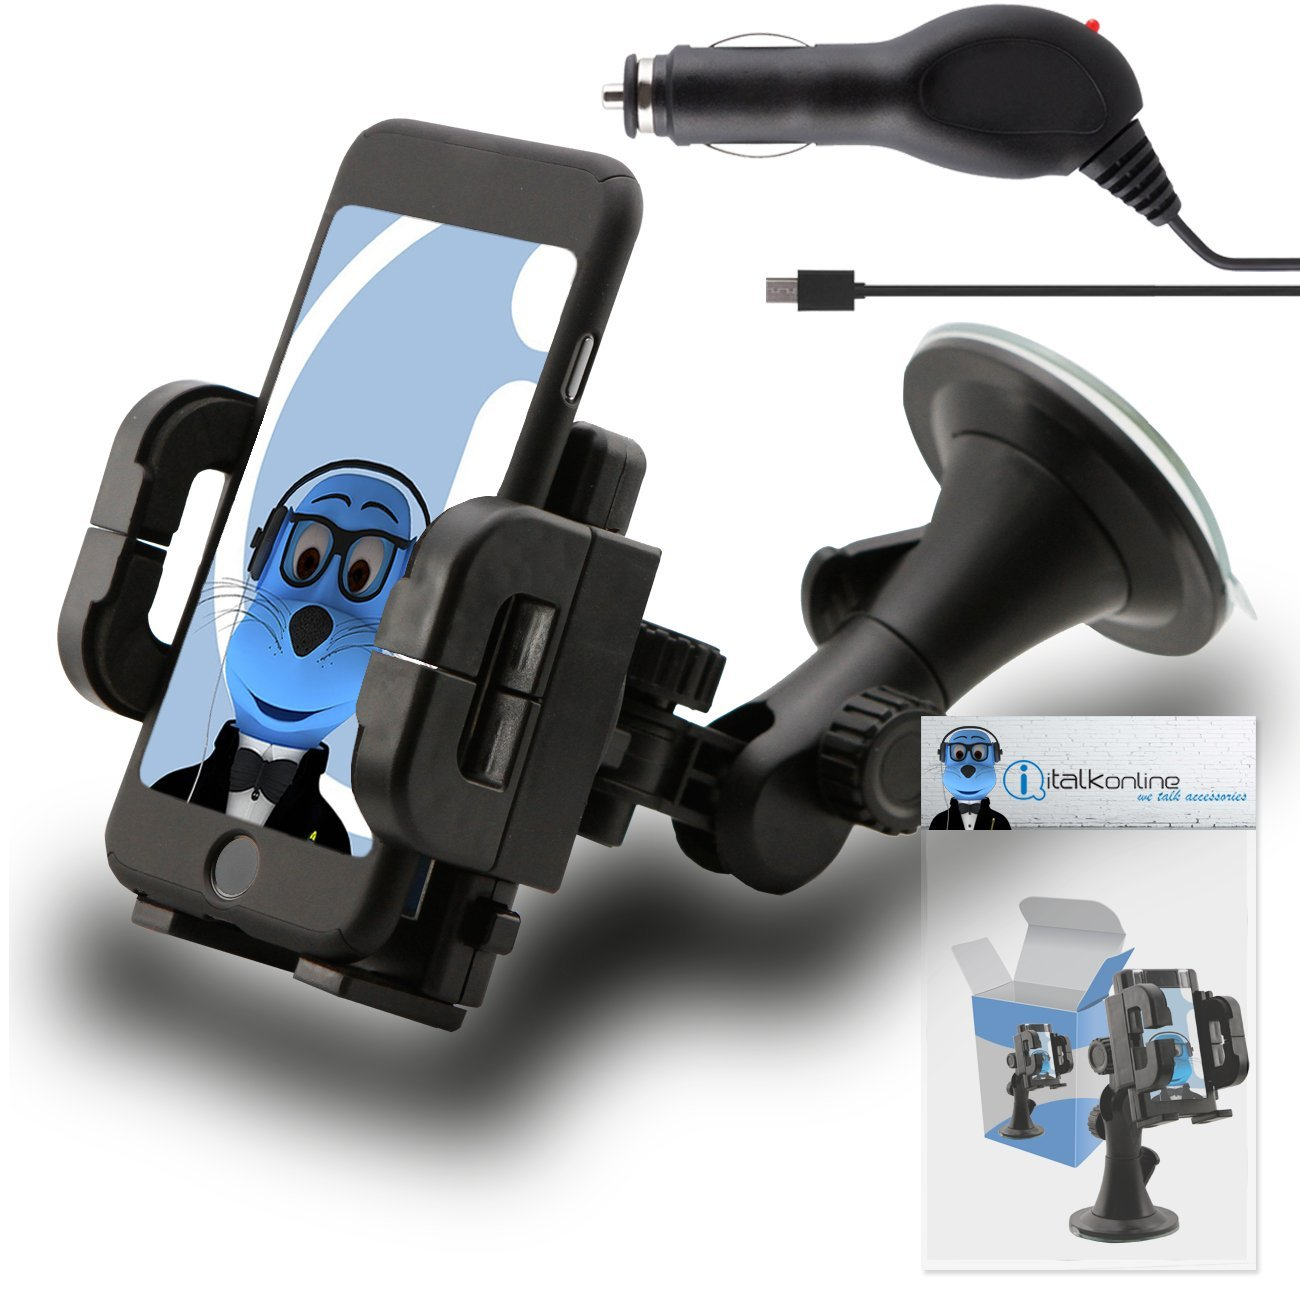 iTALKonline Huawei Ascend Mate 2 4g Black Multi-Directional Dashboard / Windscreen, Case Compatible (Use with or without your existing case!) Clip On Suction Mount In Car Holder with 1000 mAh MicroUSB In Car Charger with LED and overload protection